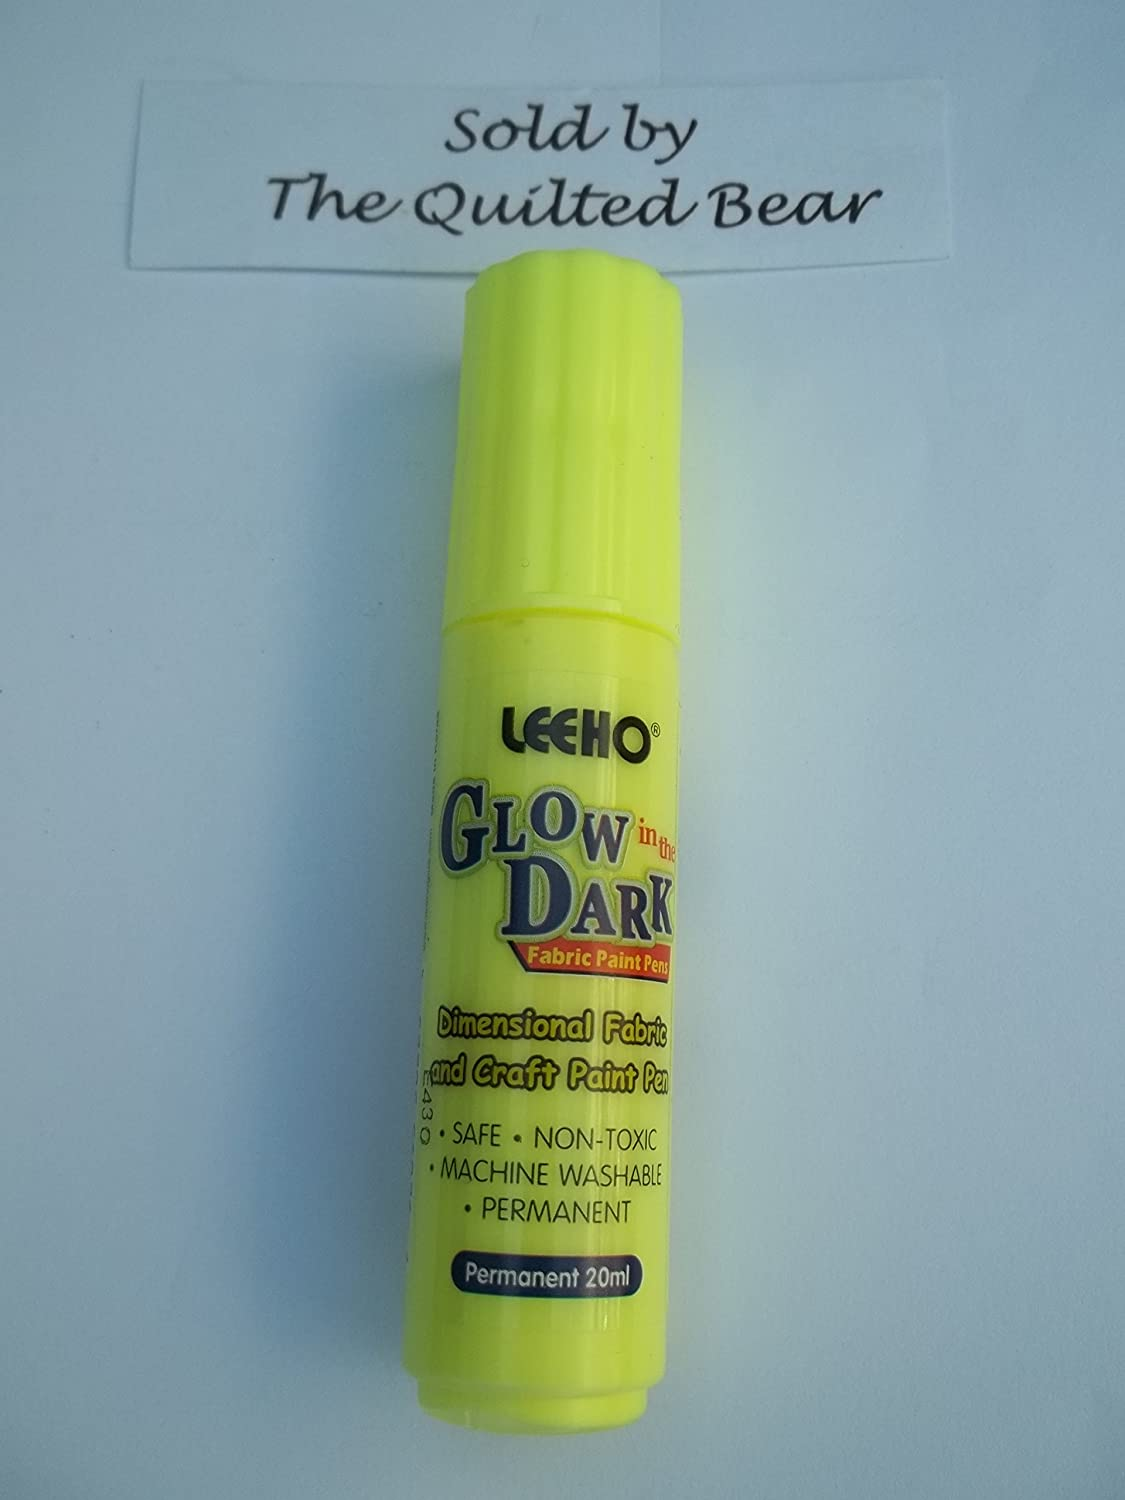 Glow in the Dark Fabric Paint Pen giallo